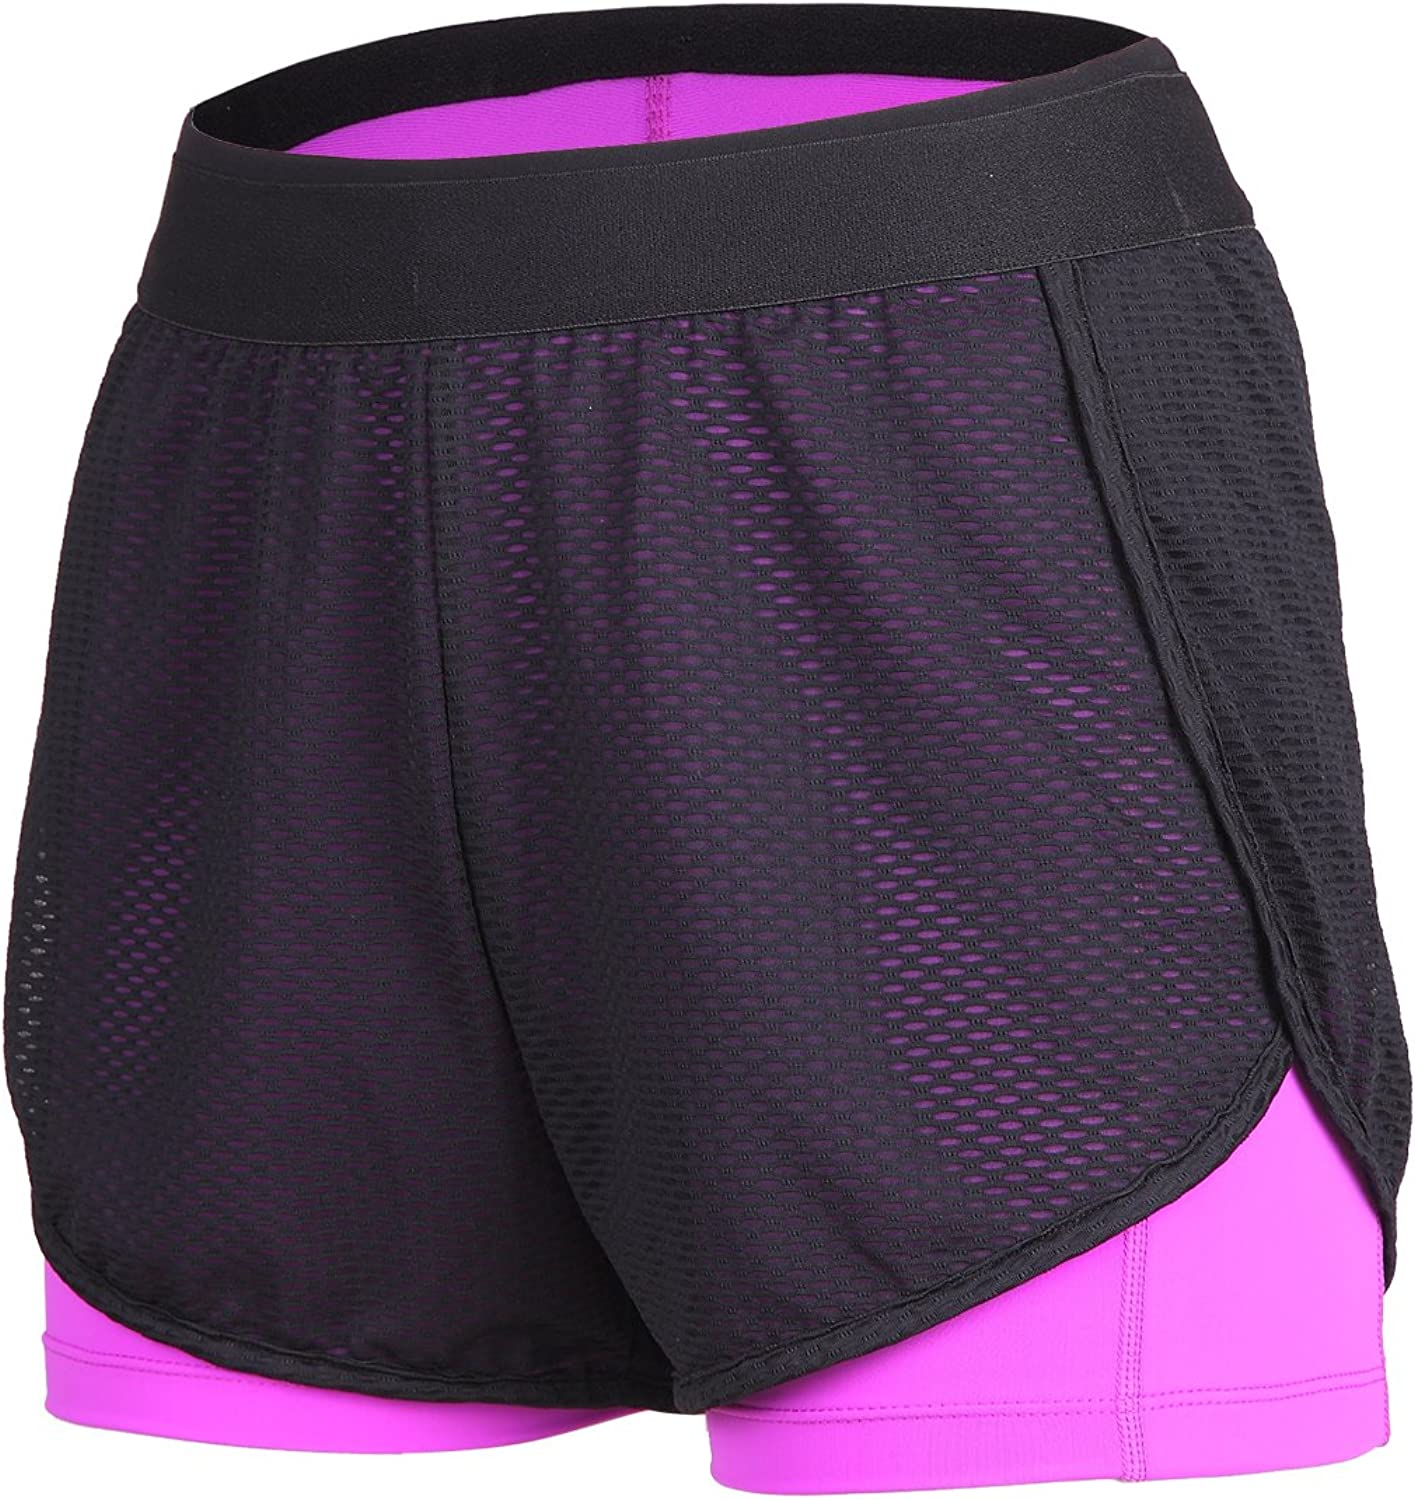 Beroy Women's MidRise Active Compression Mesh 2 in 1 Training Running Shorts